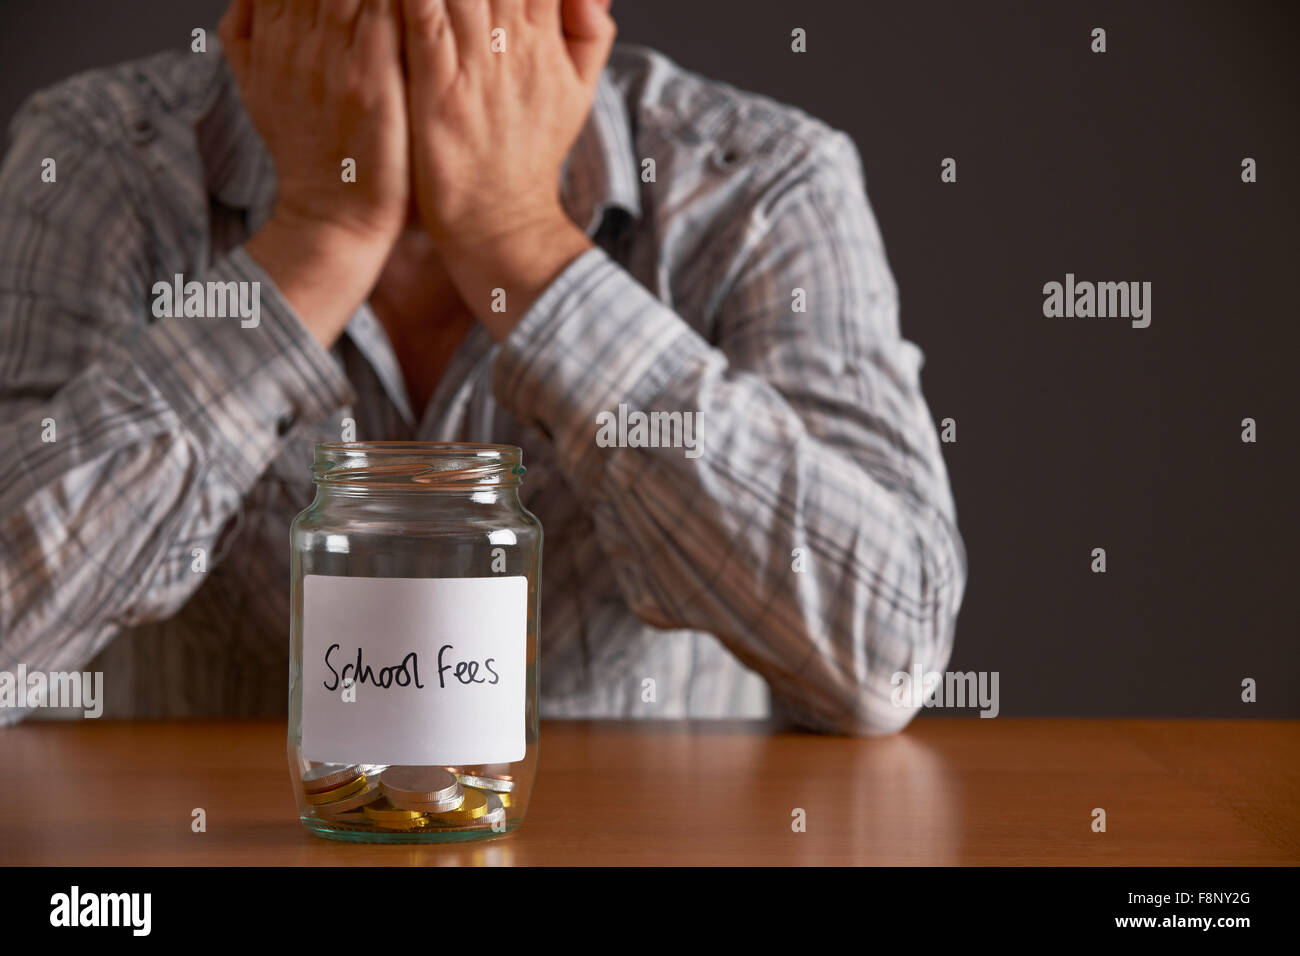 Man With Head In Hands Looking At Jar Labelled School Fees - Stock Image